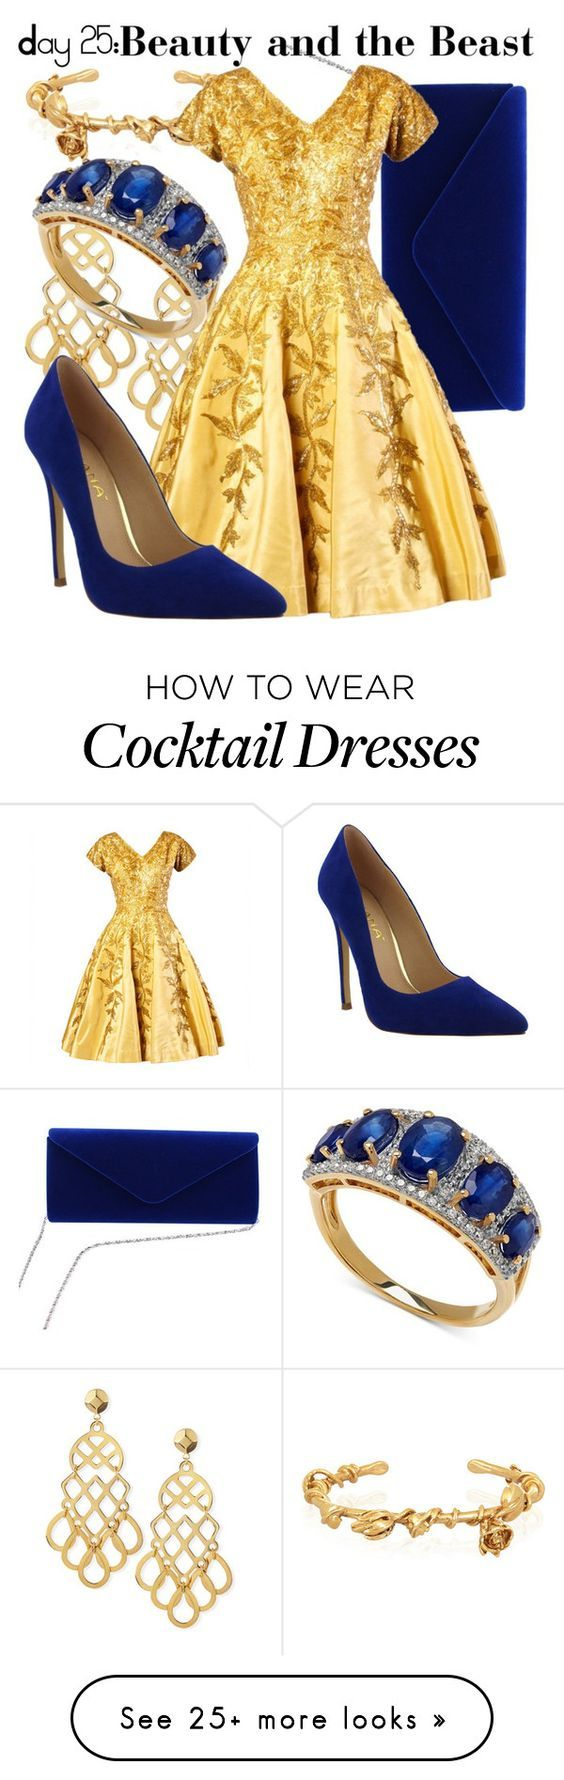 """""""Day 25: Favorite Dance- Beauty and the Beast"""" by fabulousgurl on Polyvore featuring Aurélie Bidermann and Tory Burch:"""